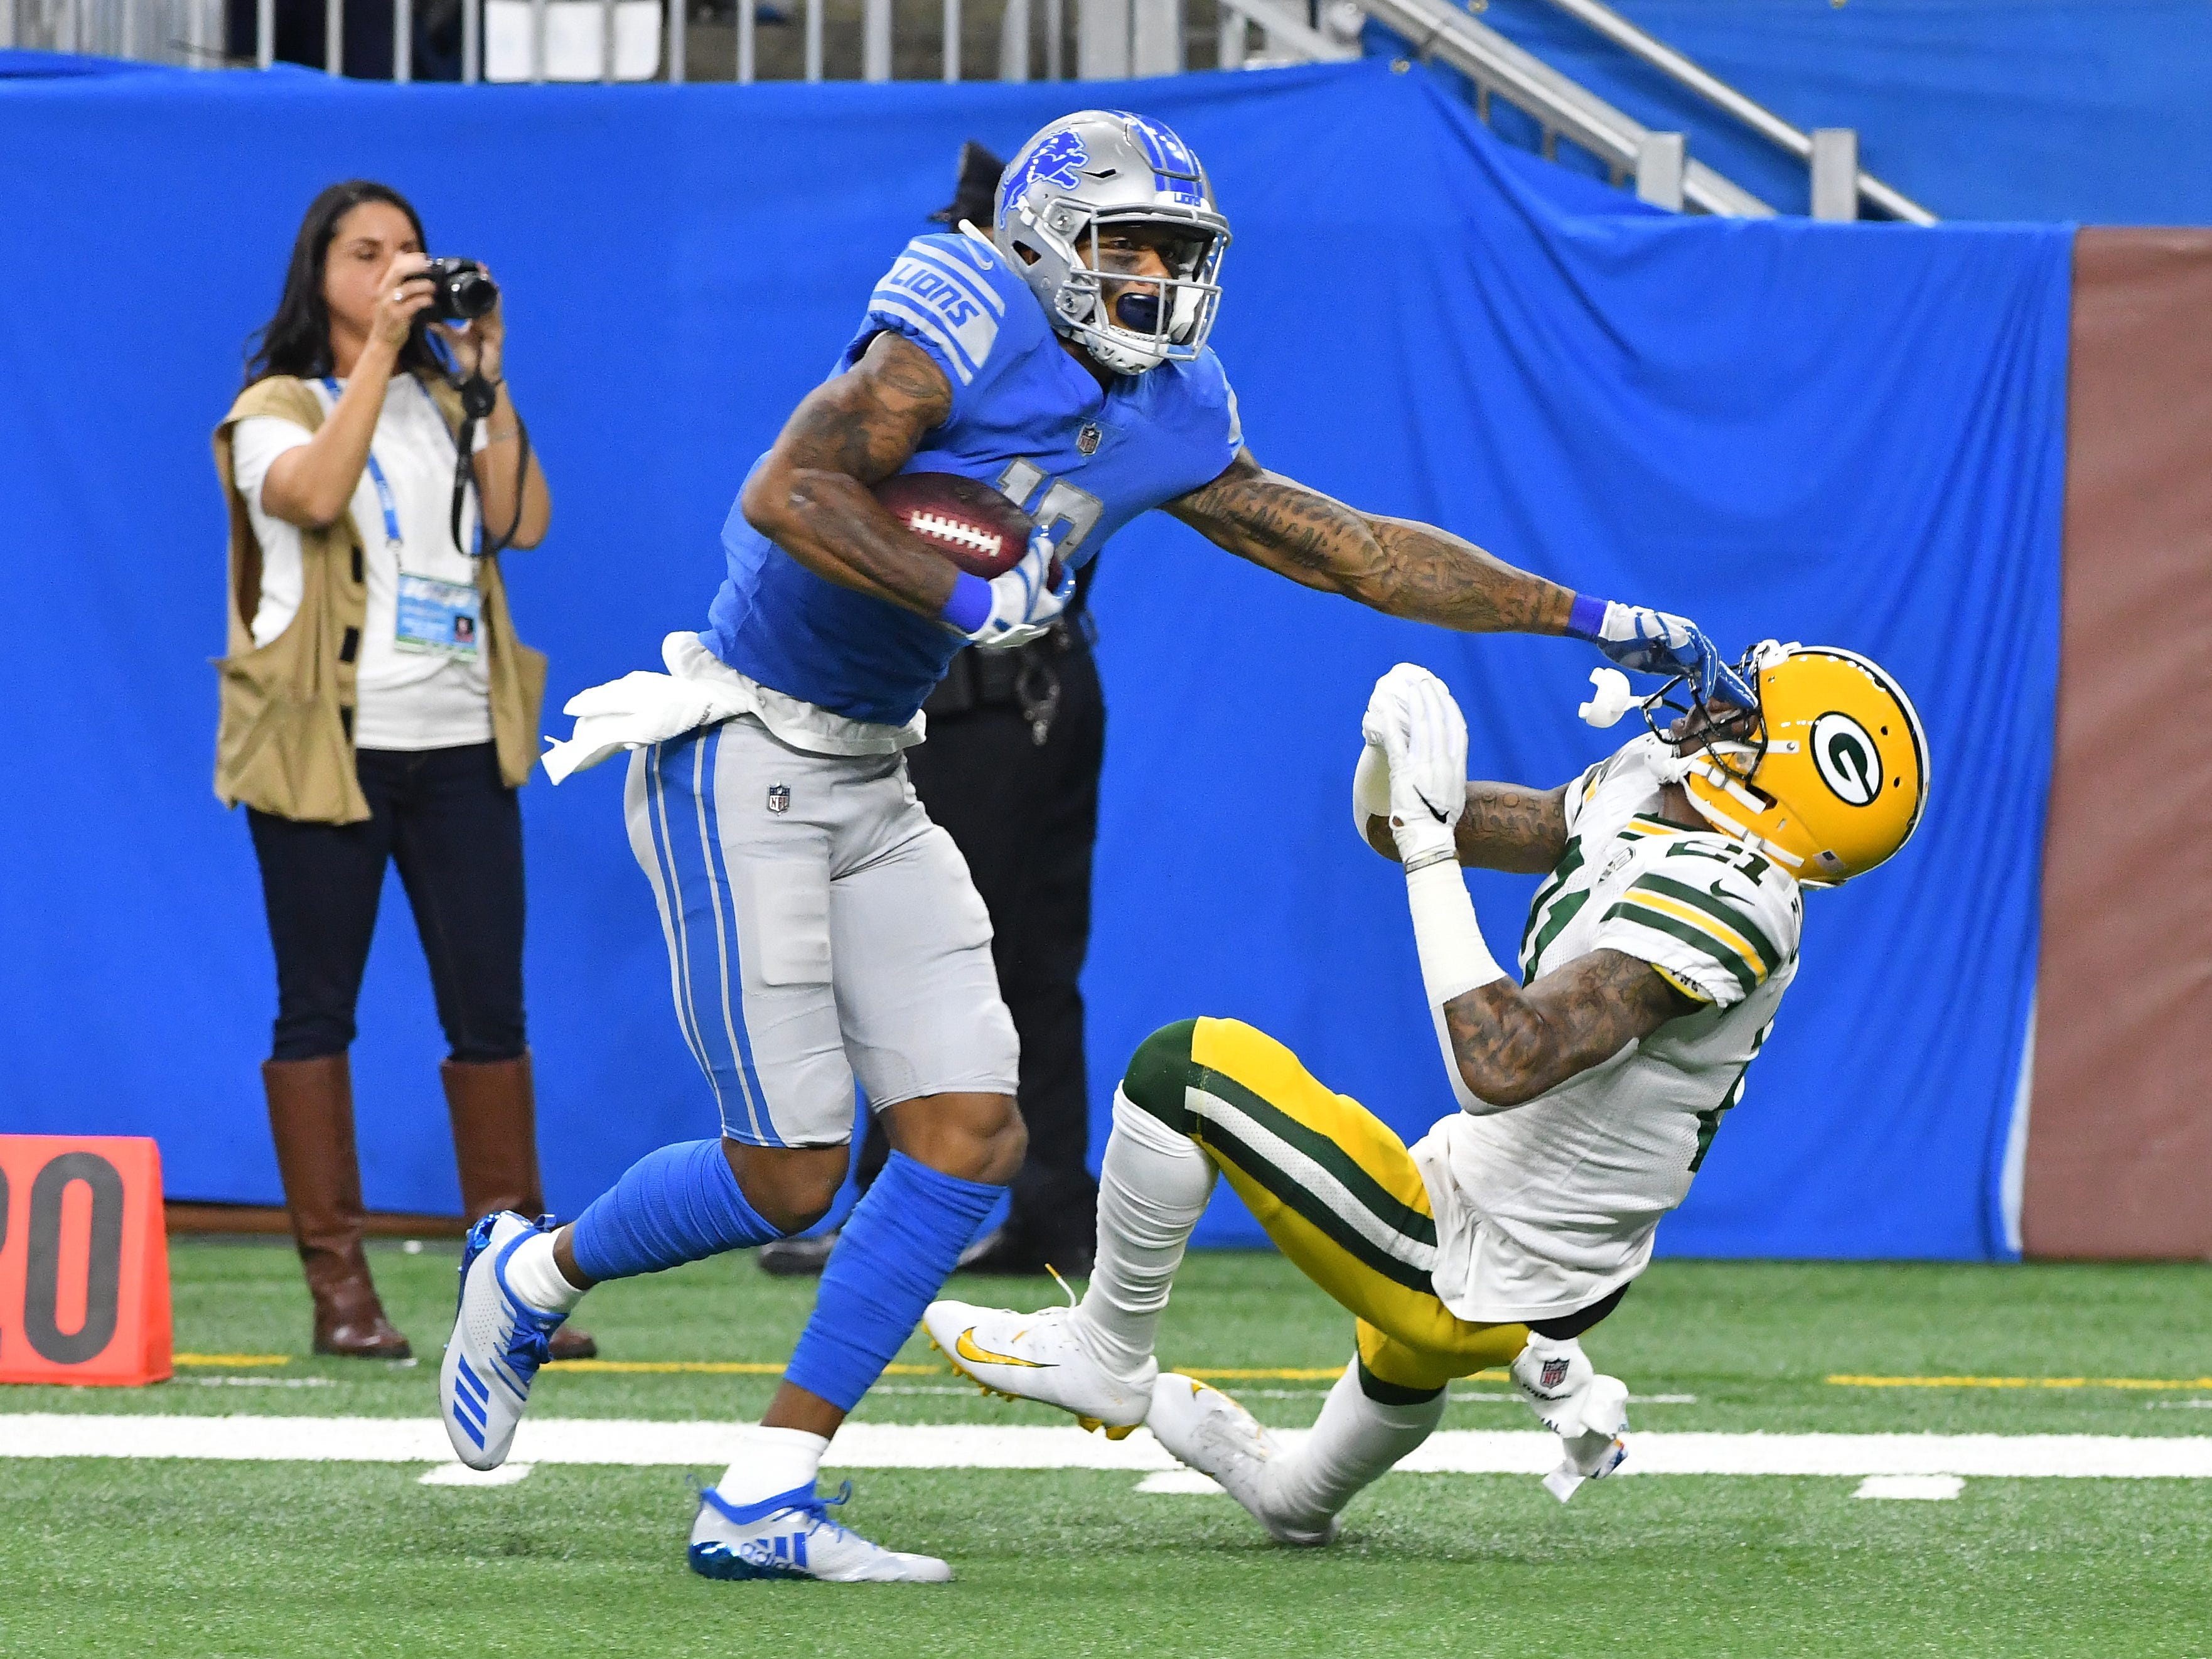 Lions' Kenny Golladay runs after a long reception down the sidelines, stiff arming Packers' Ha Ha Clinton-Dix in the first quarter.